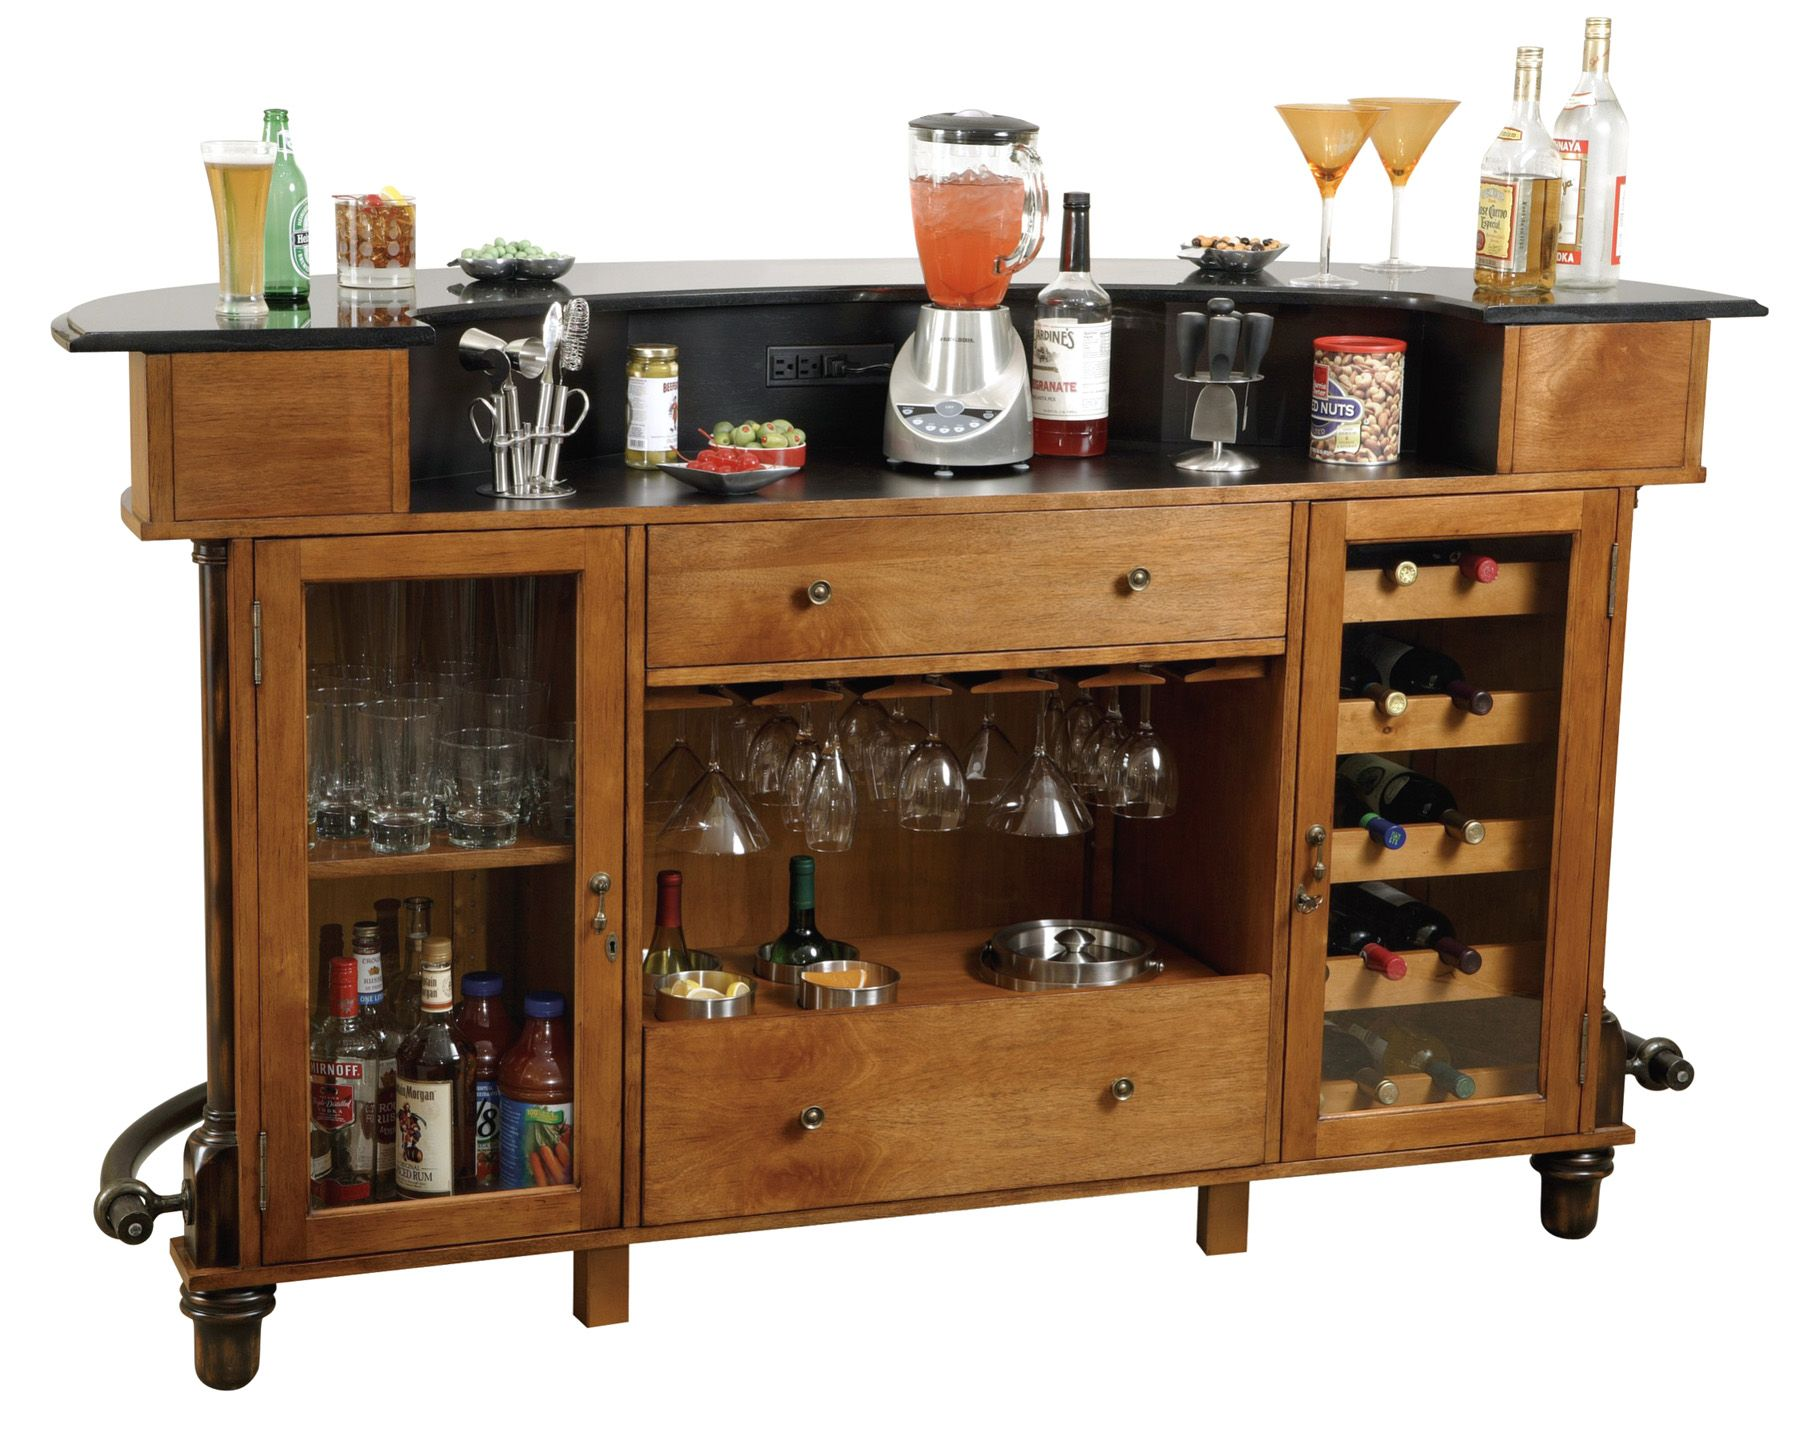 Types Of Wet Bars | Home Bar Plans – Easy Designs to Build your ...